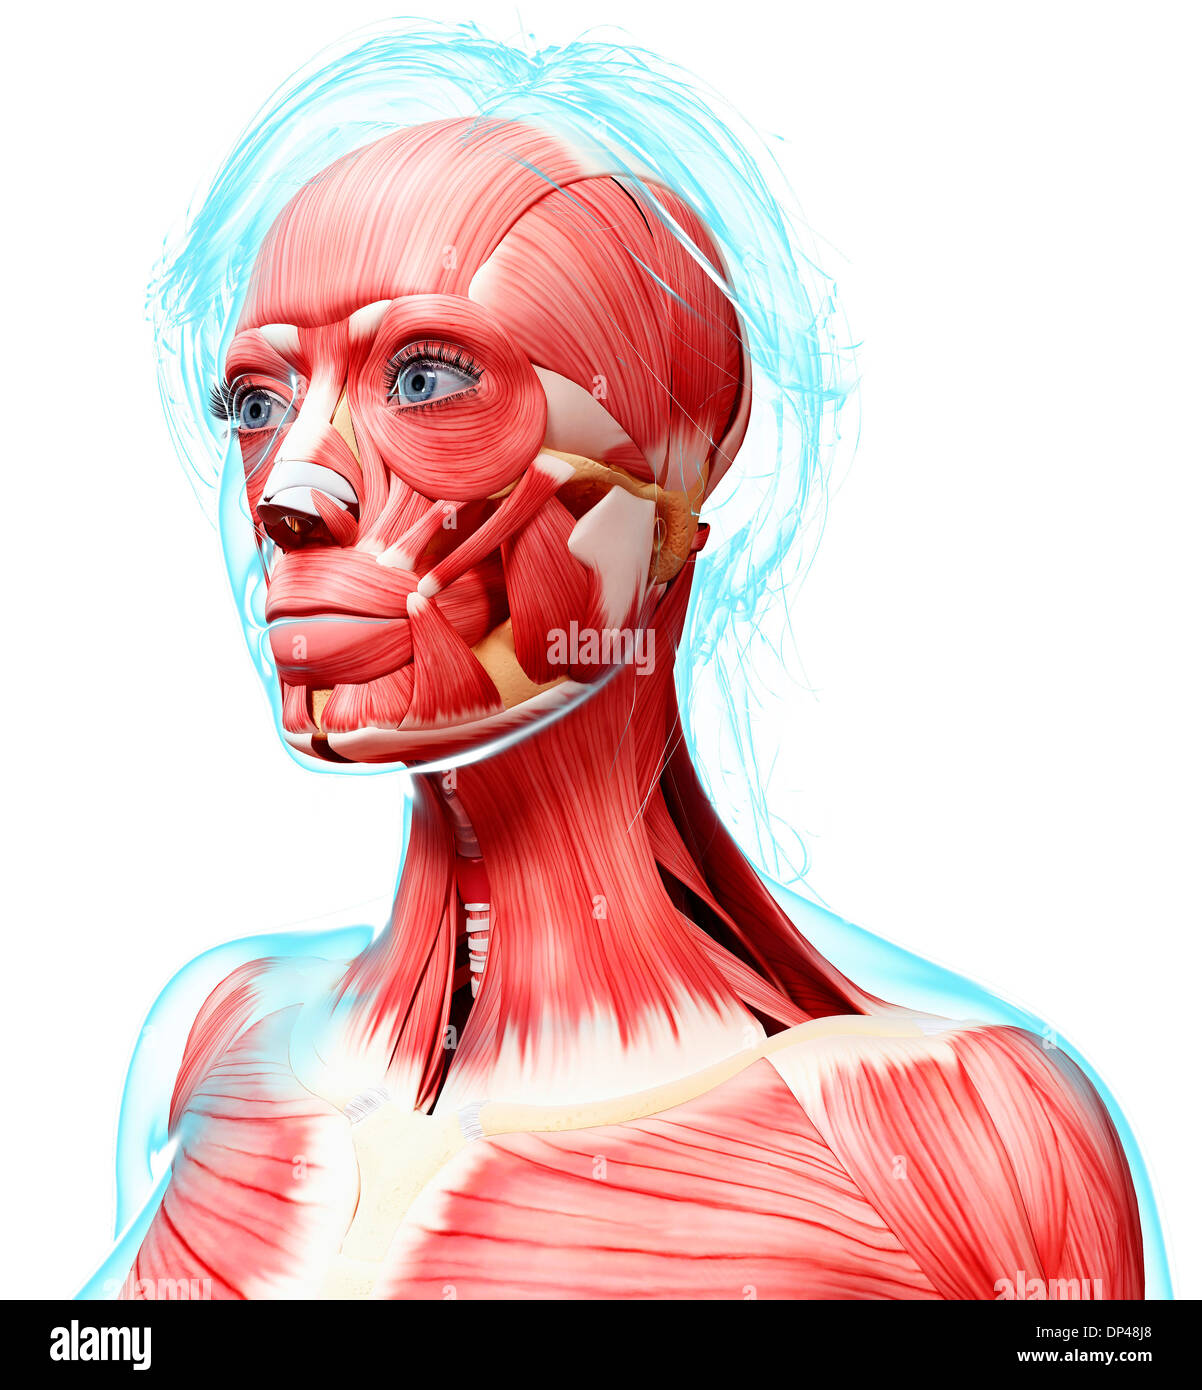 Female head musculature, artwork Stock Photo